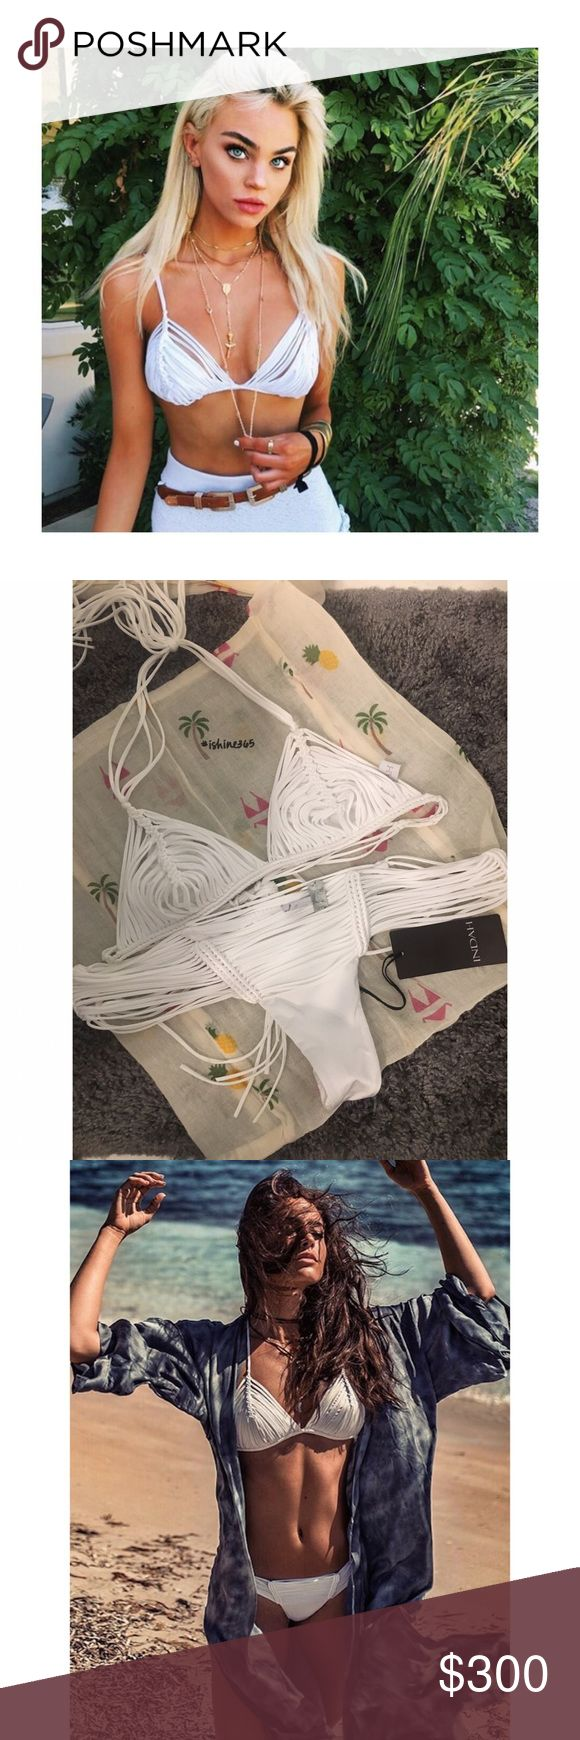 Indah swimwear set! 😍😭 This is suchhhhh a cute bikini Iv had soo many bikinis and this one is one of my favorites! So fitting on the body and makes everything look so good! Especially with a tan! Small top medium bottoms but could fit a small also! Brand new with tags! Only selling through 🅿️🅿️ or ✔️enmo! I love this bikini my price is firm! Willing to trade for other designer bikinis! Indah Swim Bikinis